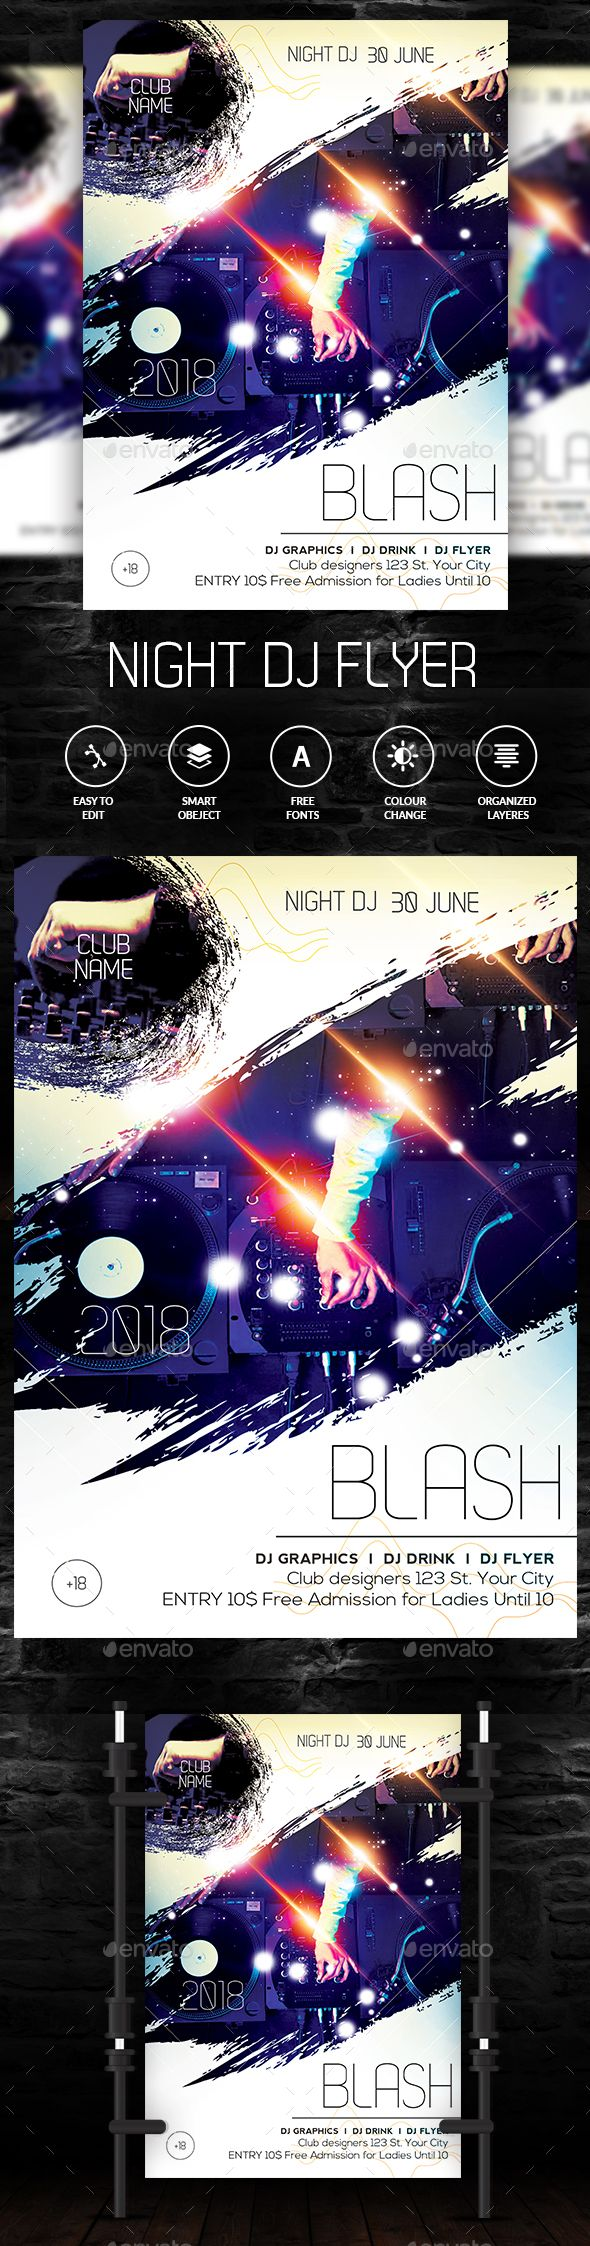 Club Flyer — Photoshop PSD #dj #electro • Download ➝ https://graphicriver.net/item/club-flyer/20257779?ref=pxcr